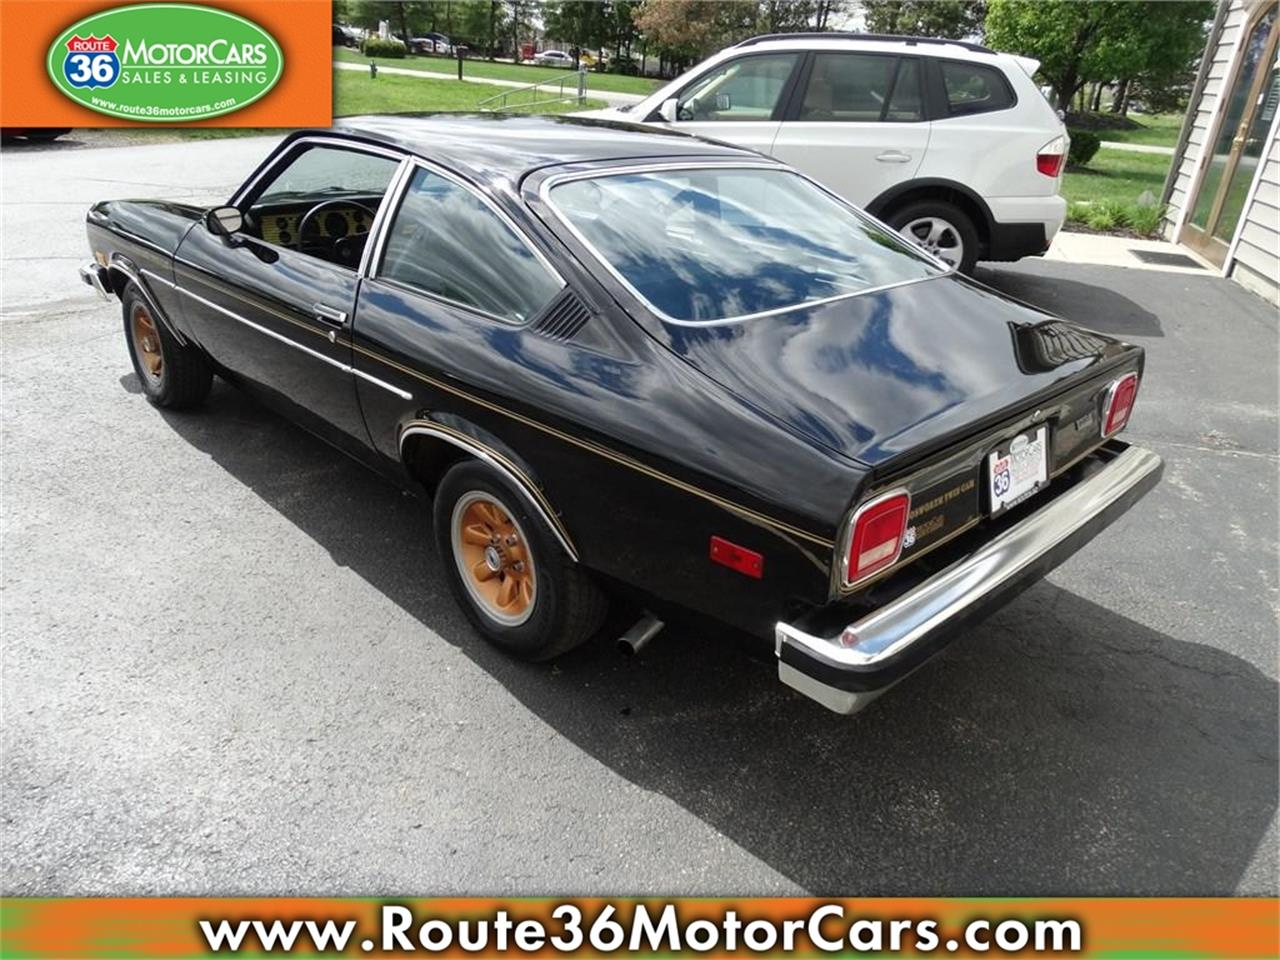 Large Picture of '75 Vega - $10,475.00 Offered by Route 36 Motor Cars - IKGX